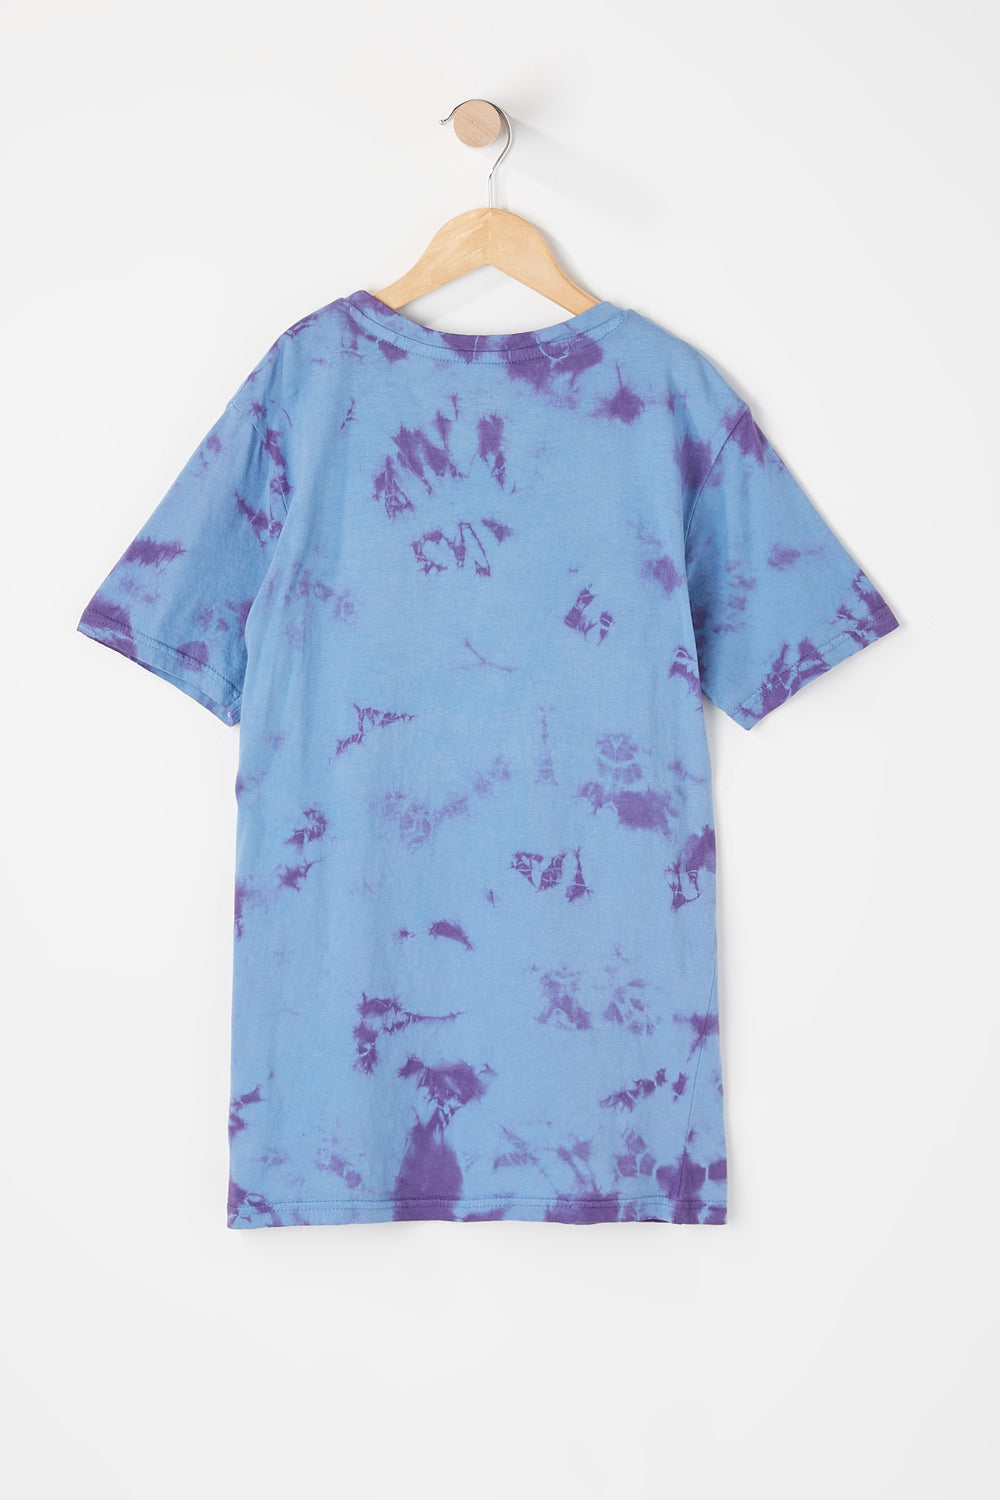 T-Shirt Tie-Dye Zoo York Junior Aubergine